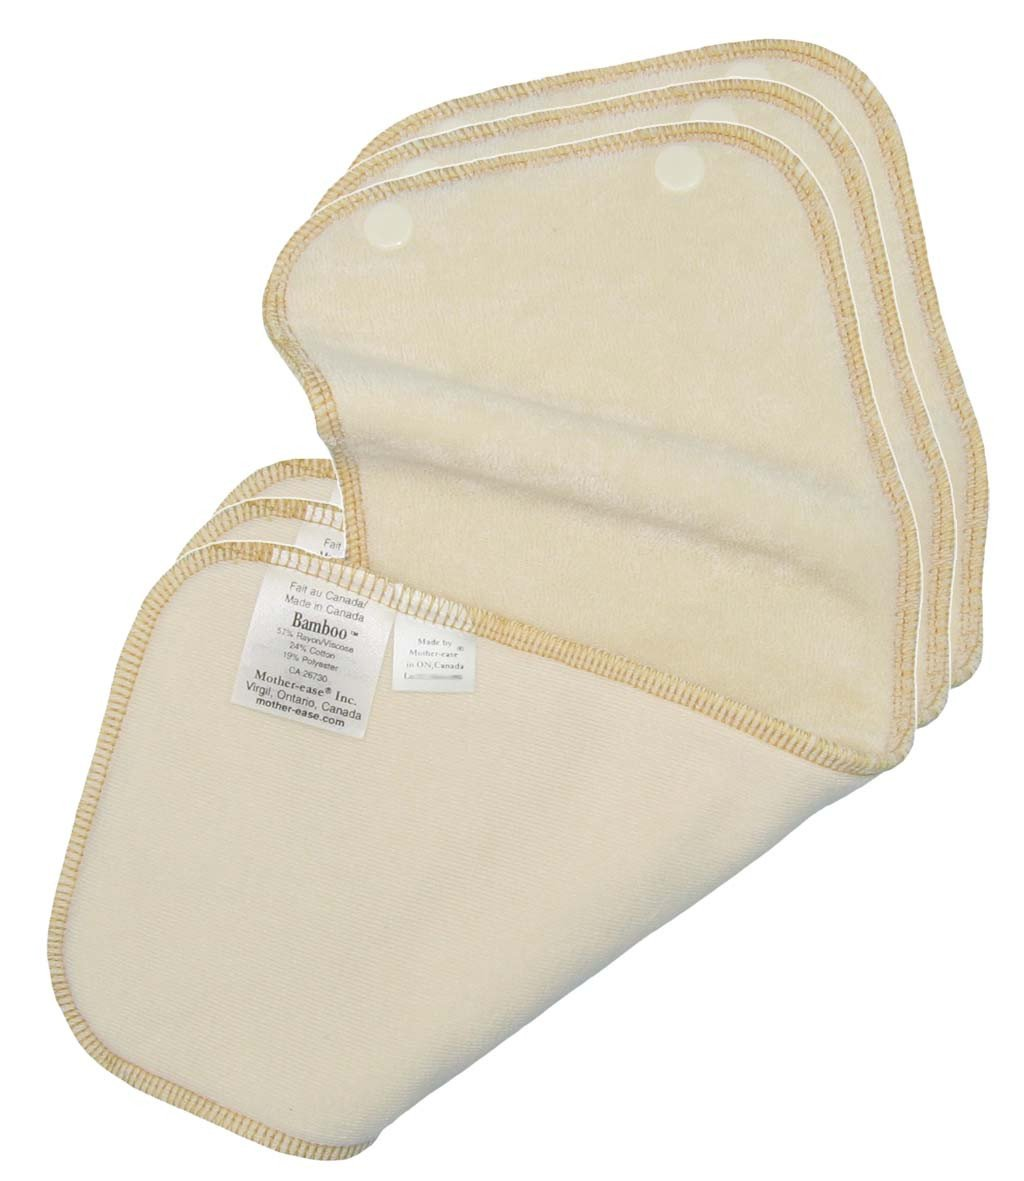 Mother-ease Snap In Absorbent Liner - One-Size - Single